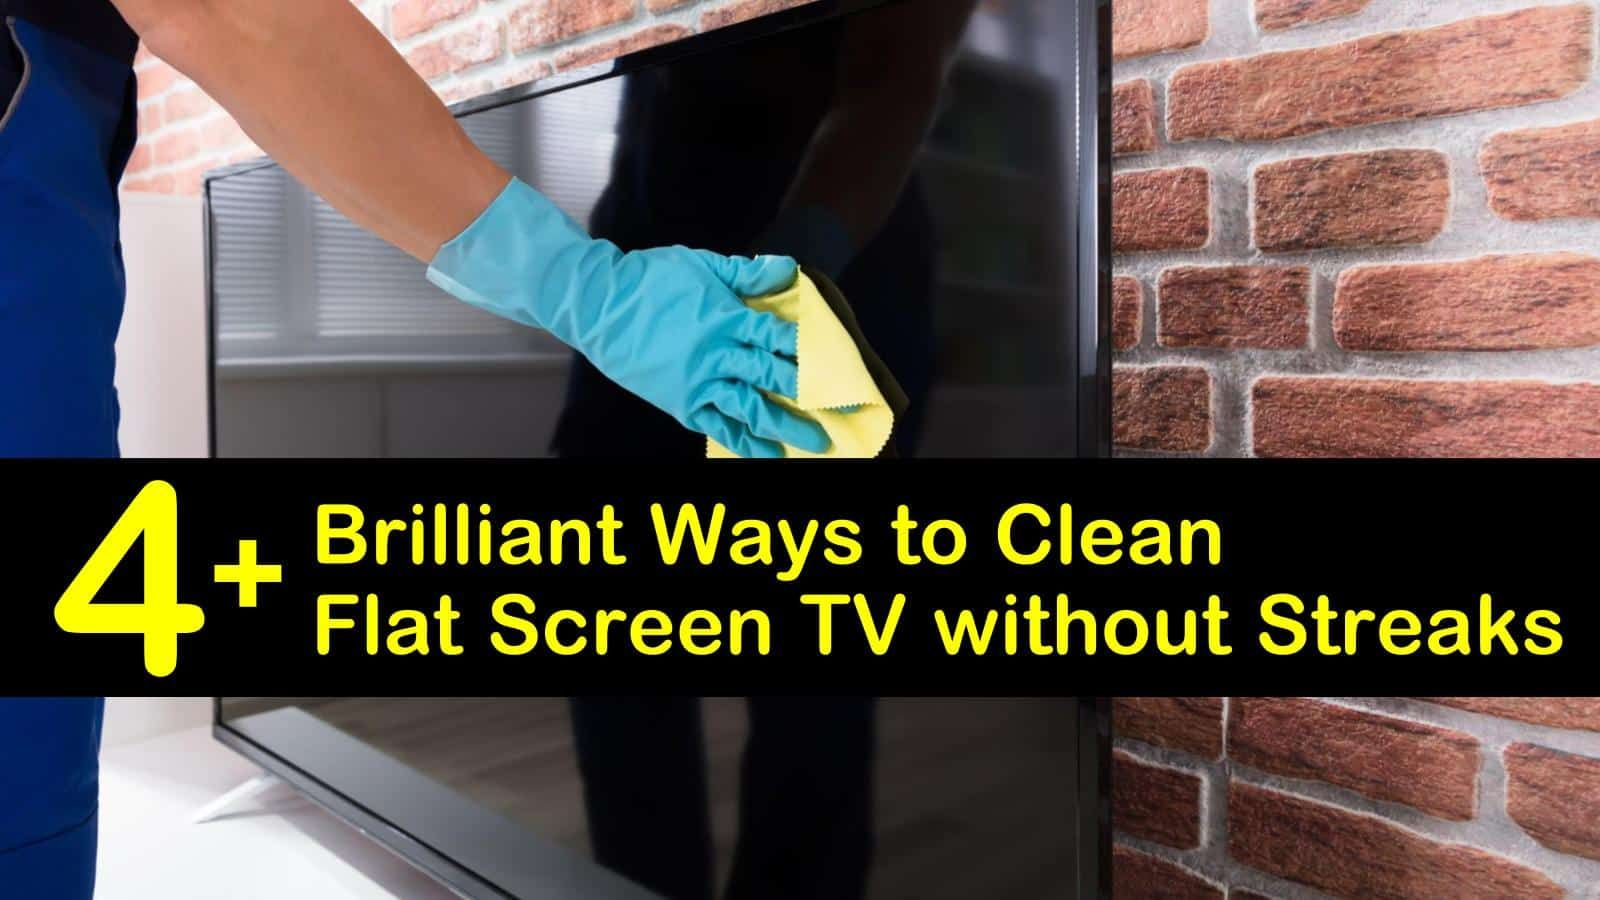 4+ Brilliant Ways to Clean Flat Screen TV without Streaks